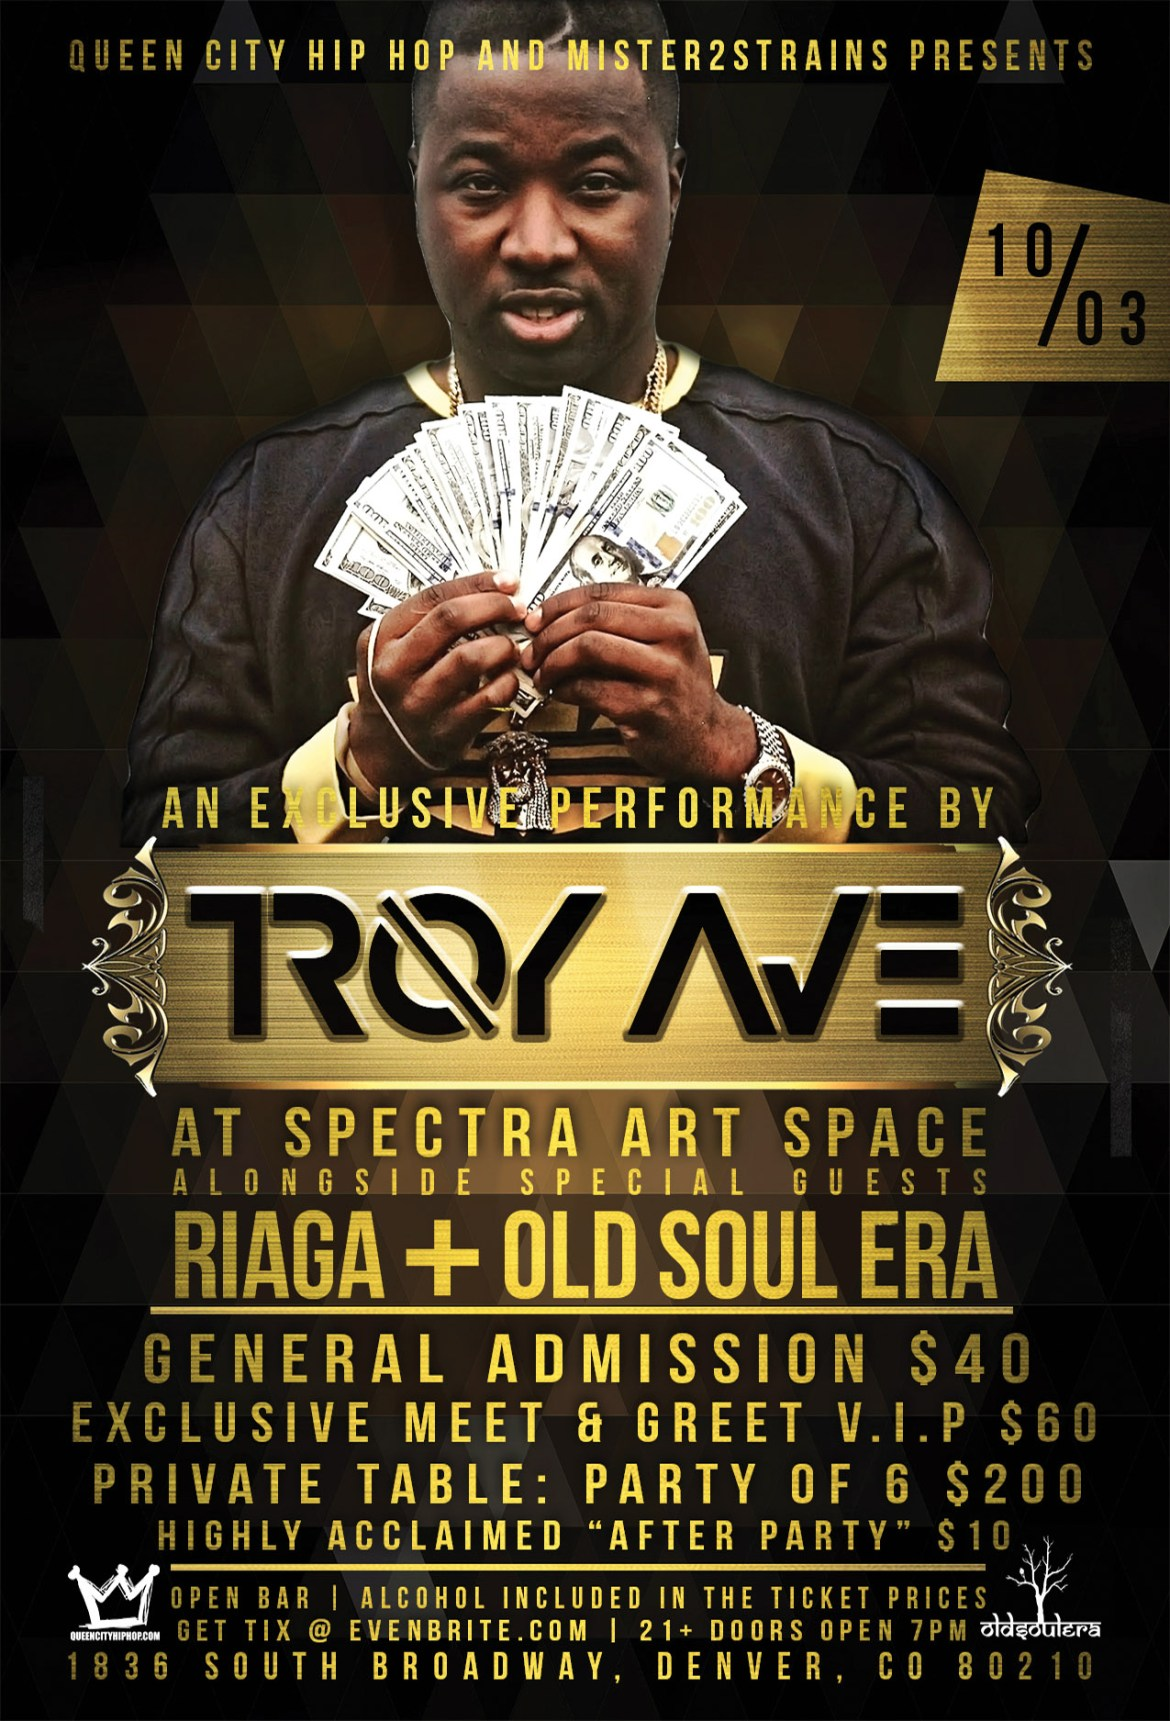 troy ave flyer